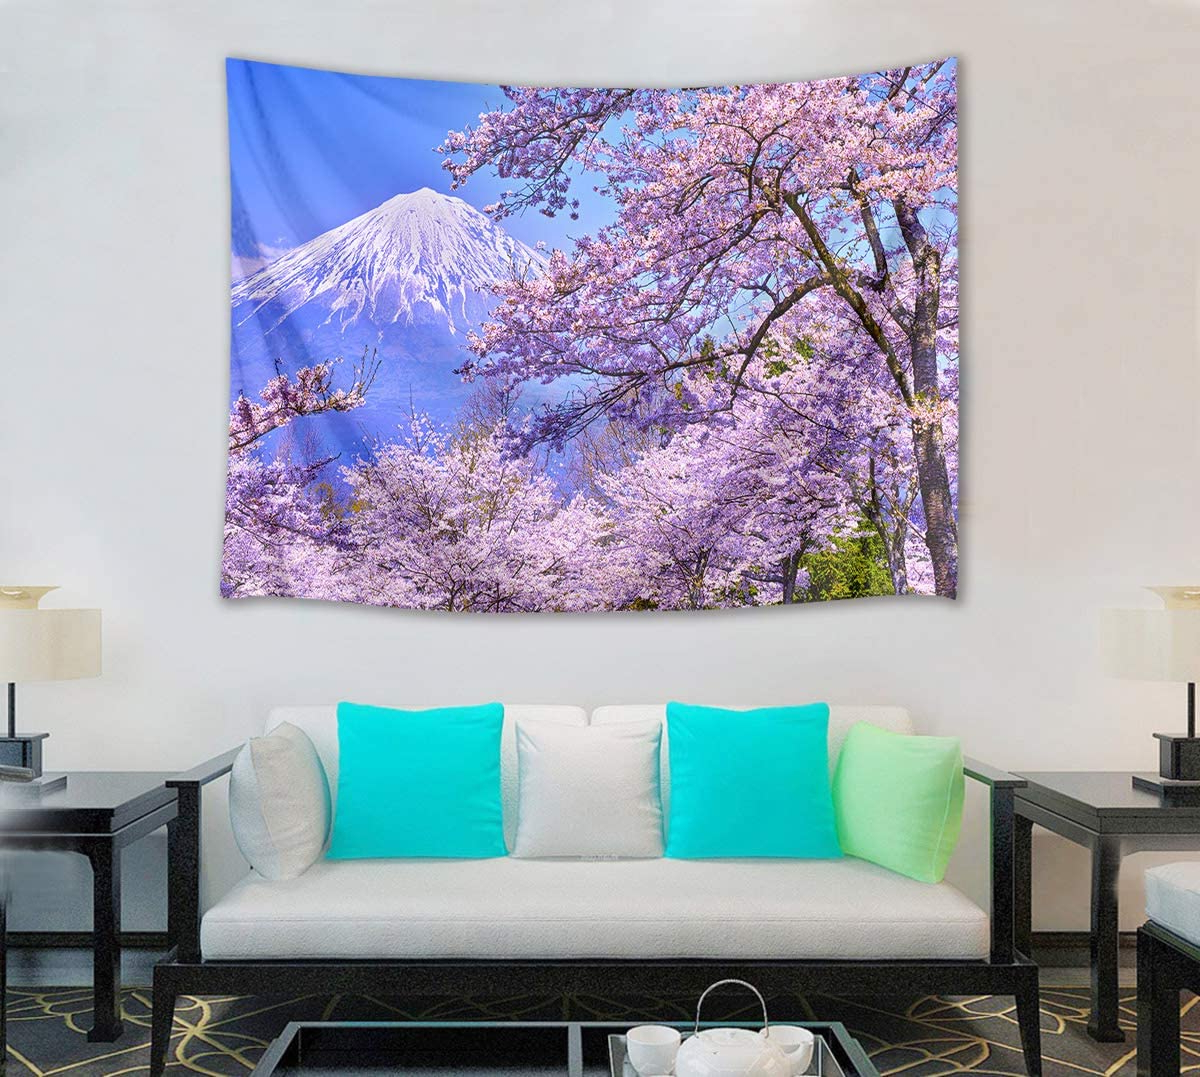 Blended Fabric Spring Blossom Tapestries For Current Hvest Cherry Blossom Tapestry Mount Fuji With Pink Sakura Flowers Wall Hanging Blanket Spring Scenery Tapestries For Bedroom Living Room Dorm (View 18 of 20)